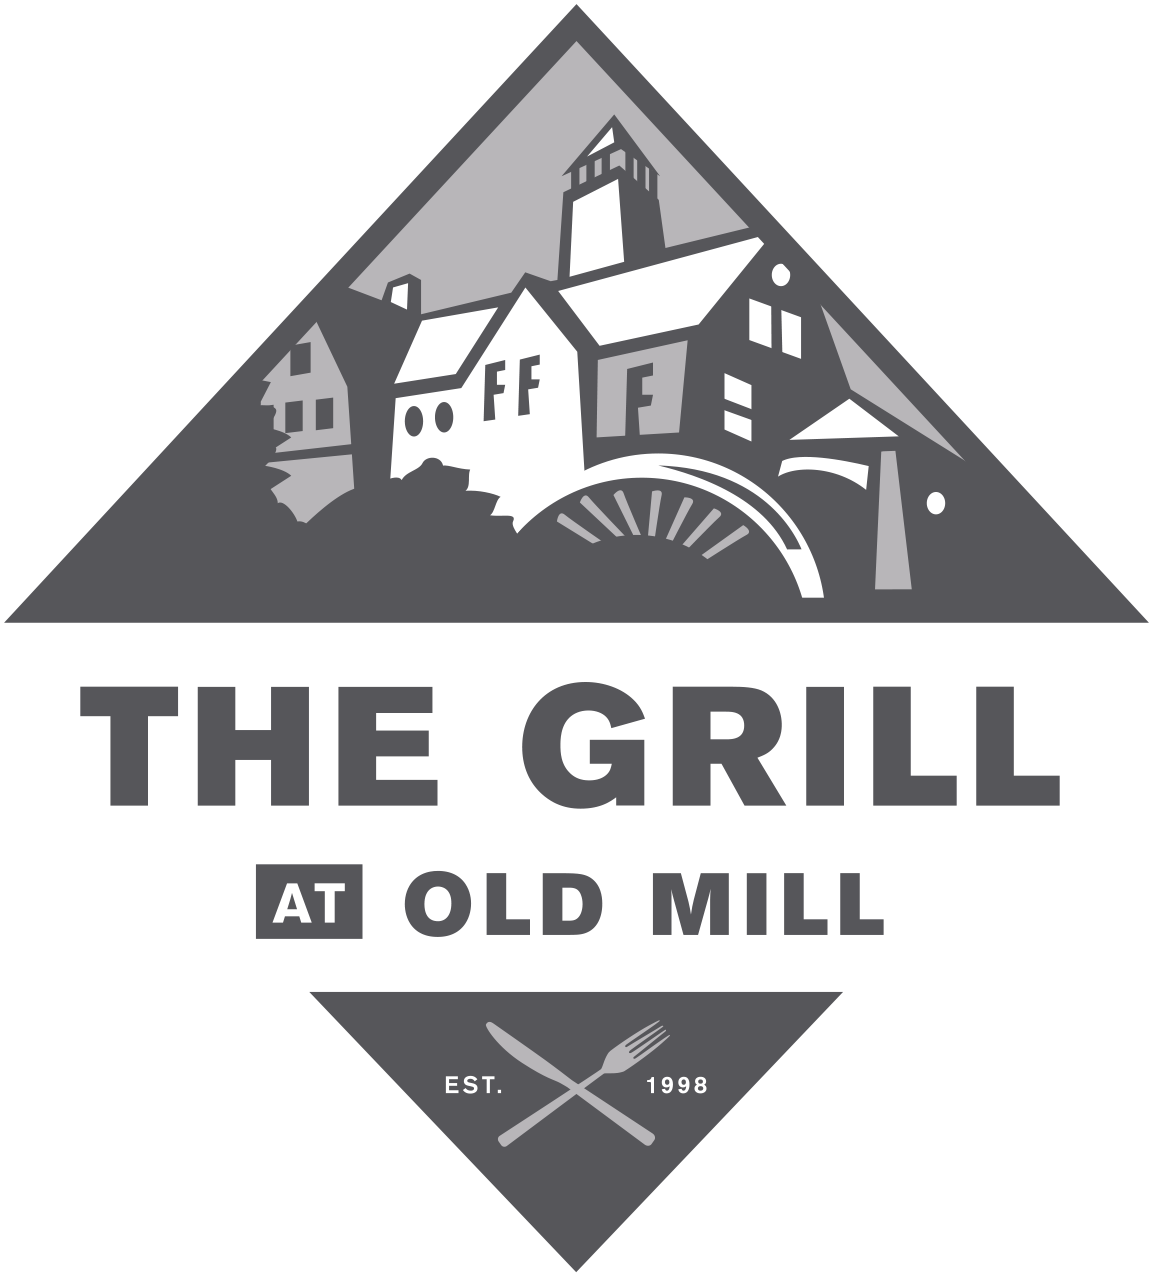 The Grill at Old Mill